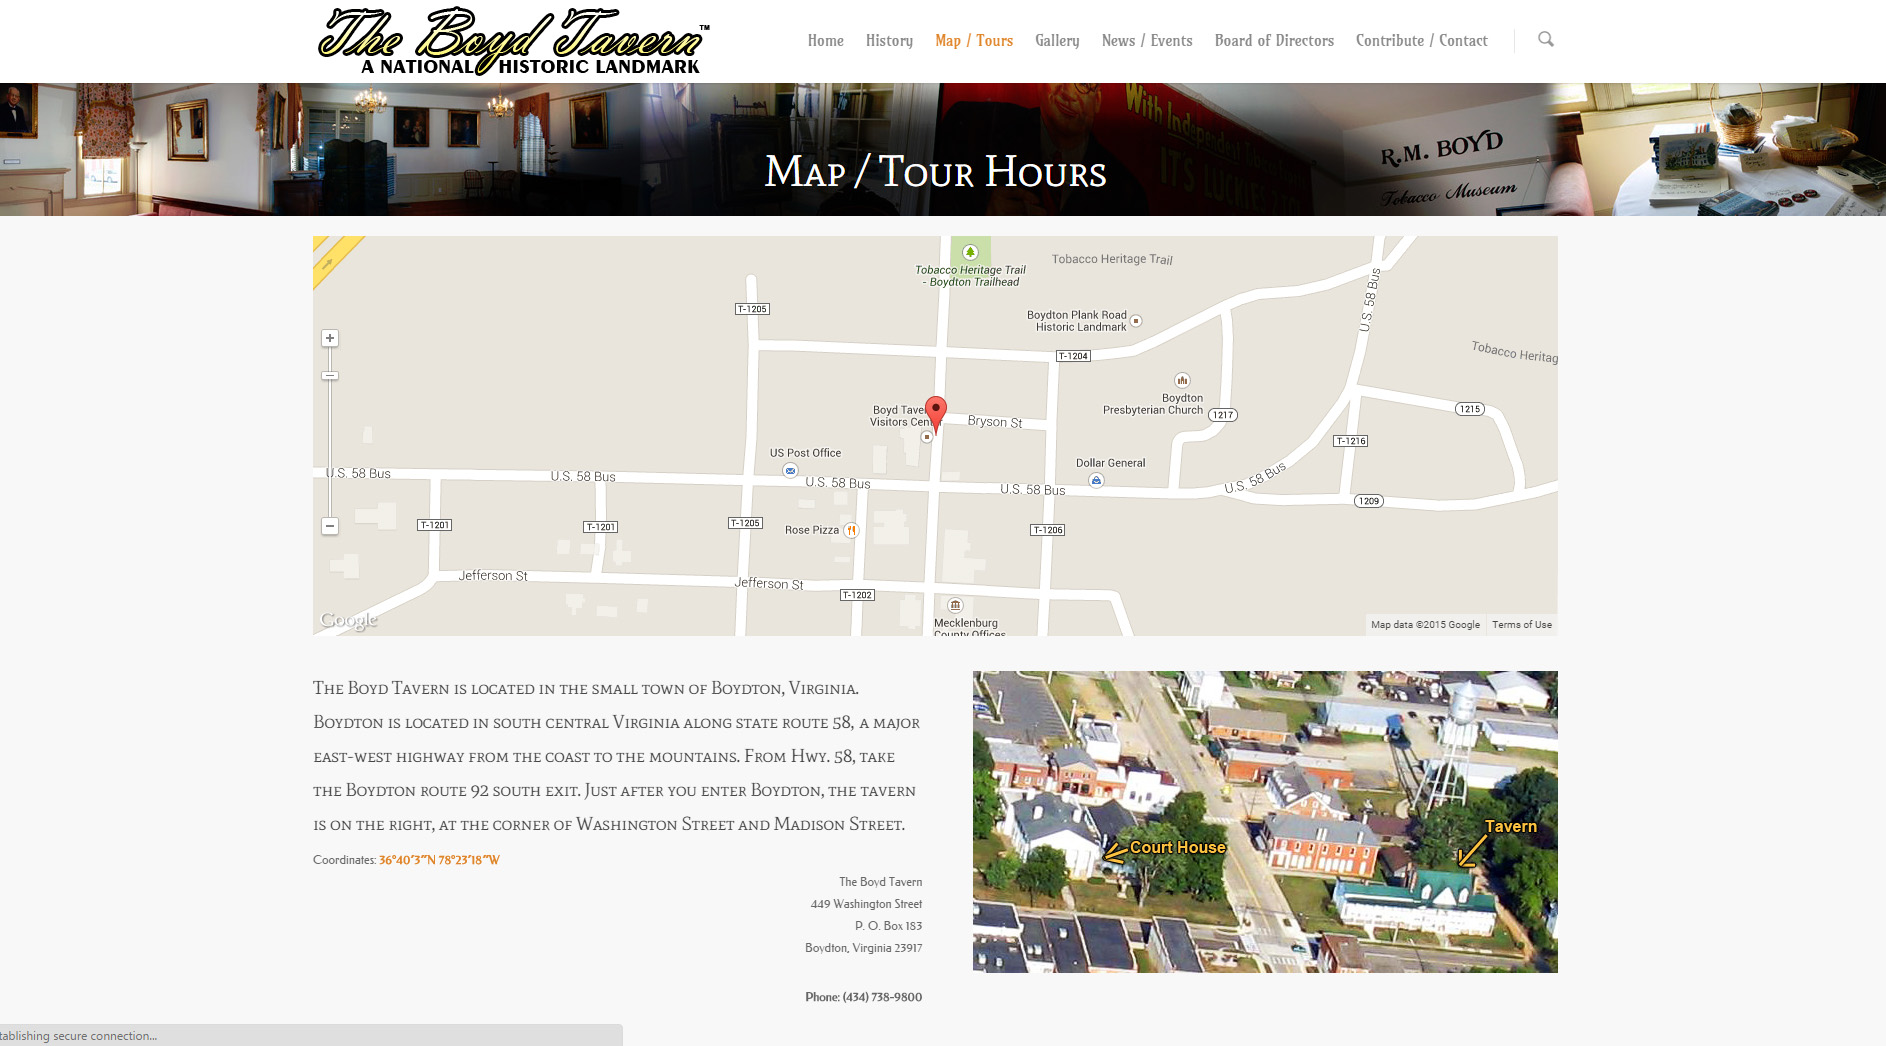 The map page features an interactive Google map.